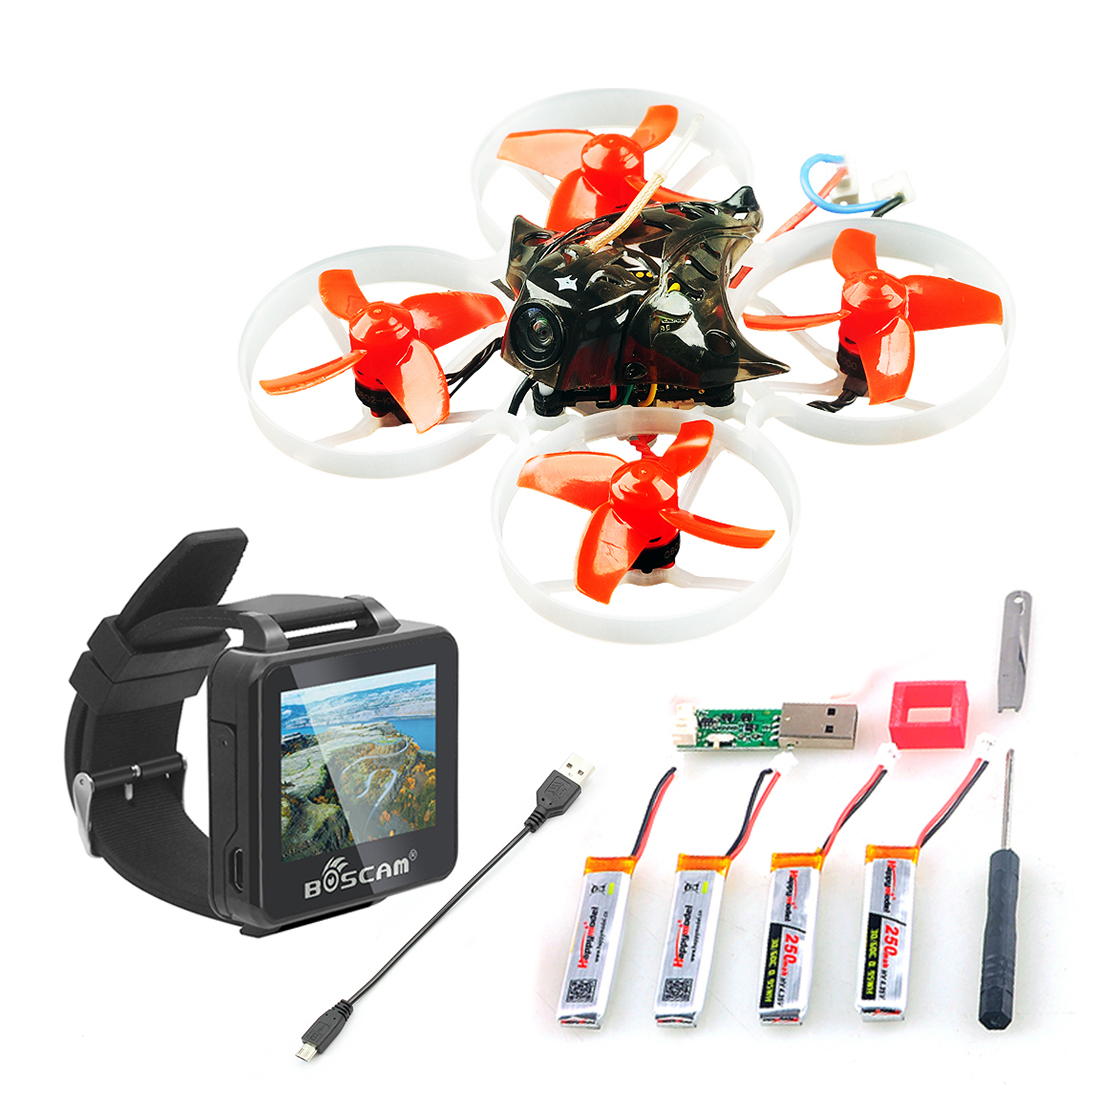 Mini Mobula 7 75mm BOSCAM BOS200RC FPV Uhr Crazybee F3 Pro OSD 2 s BWhoop Racing Drone Quadcopter BB2 ESC BNF Frsky Flysky